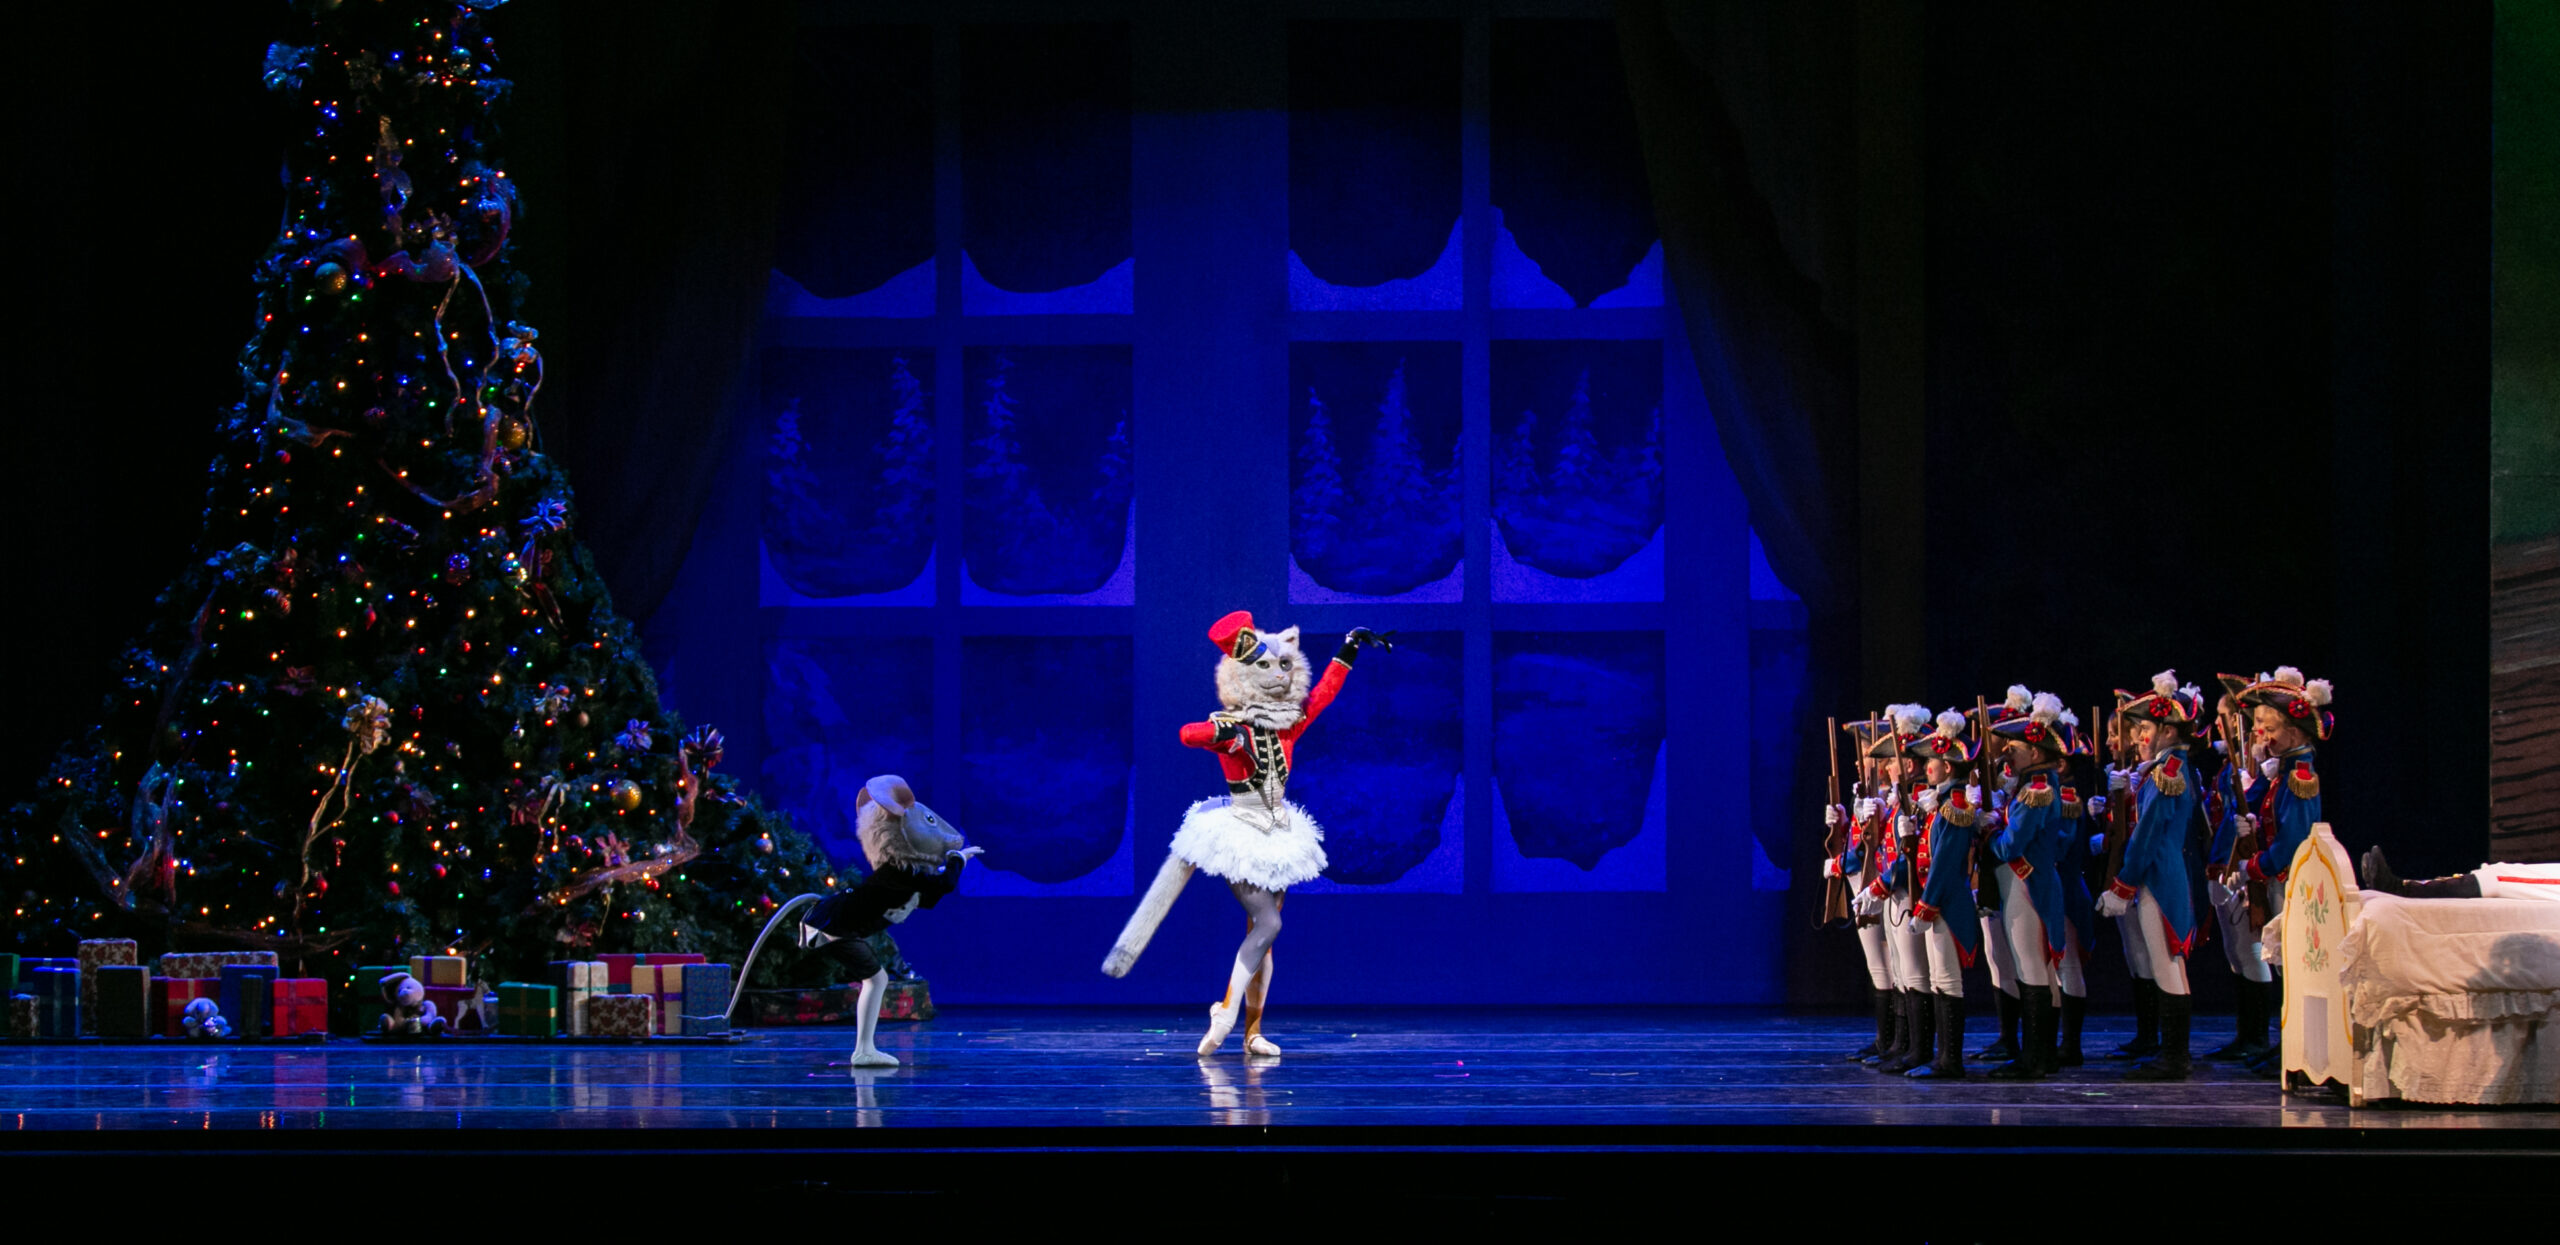 The Carolina Ballet's The Nutcracker